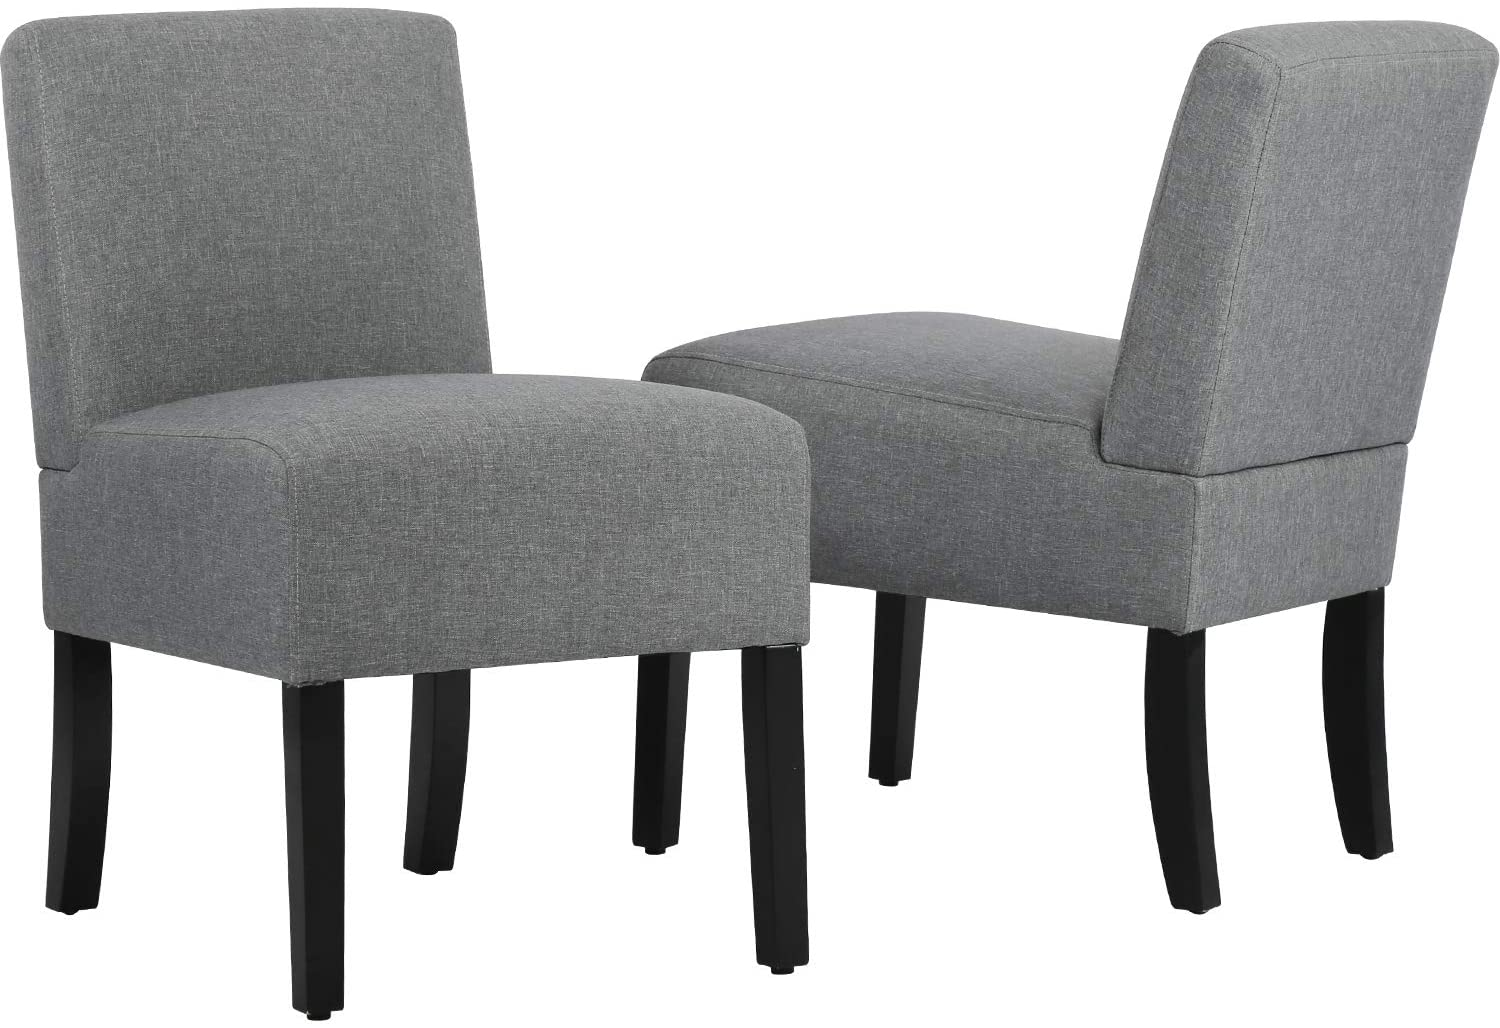 Top Image Living Room Chair Set Of 2